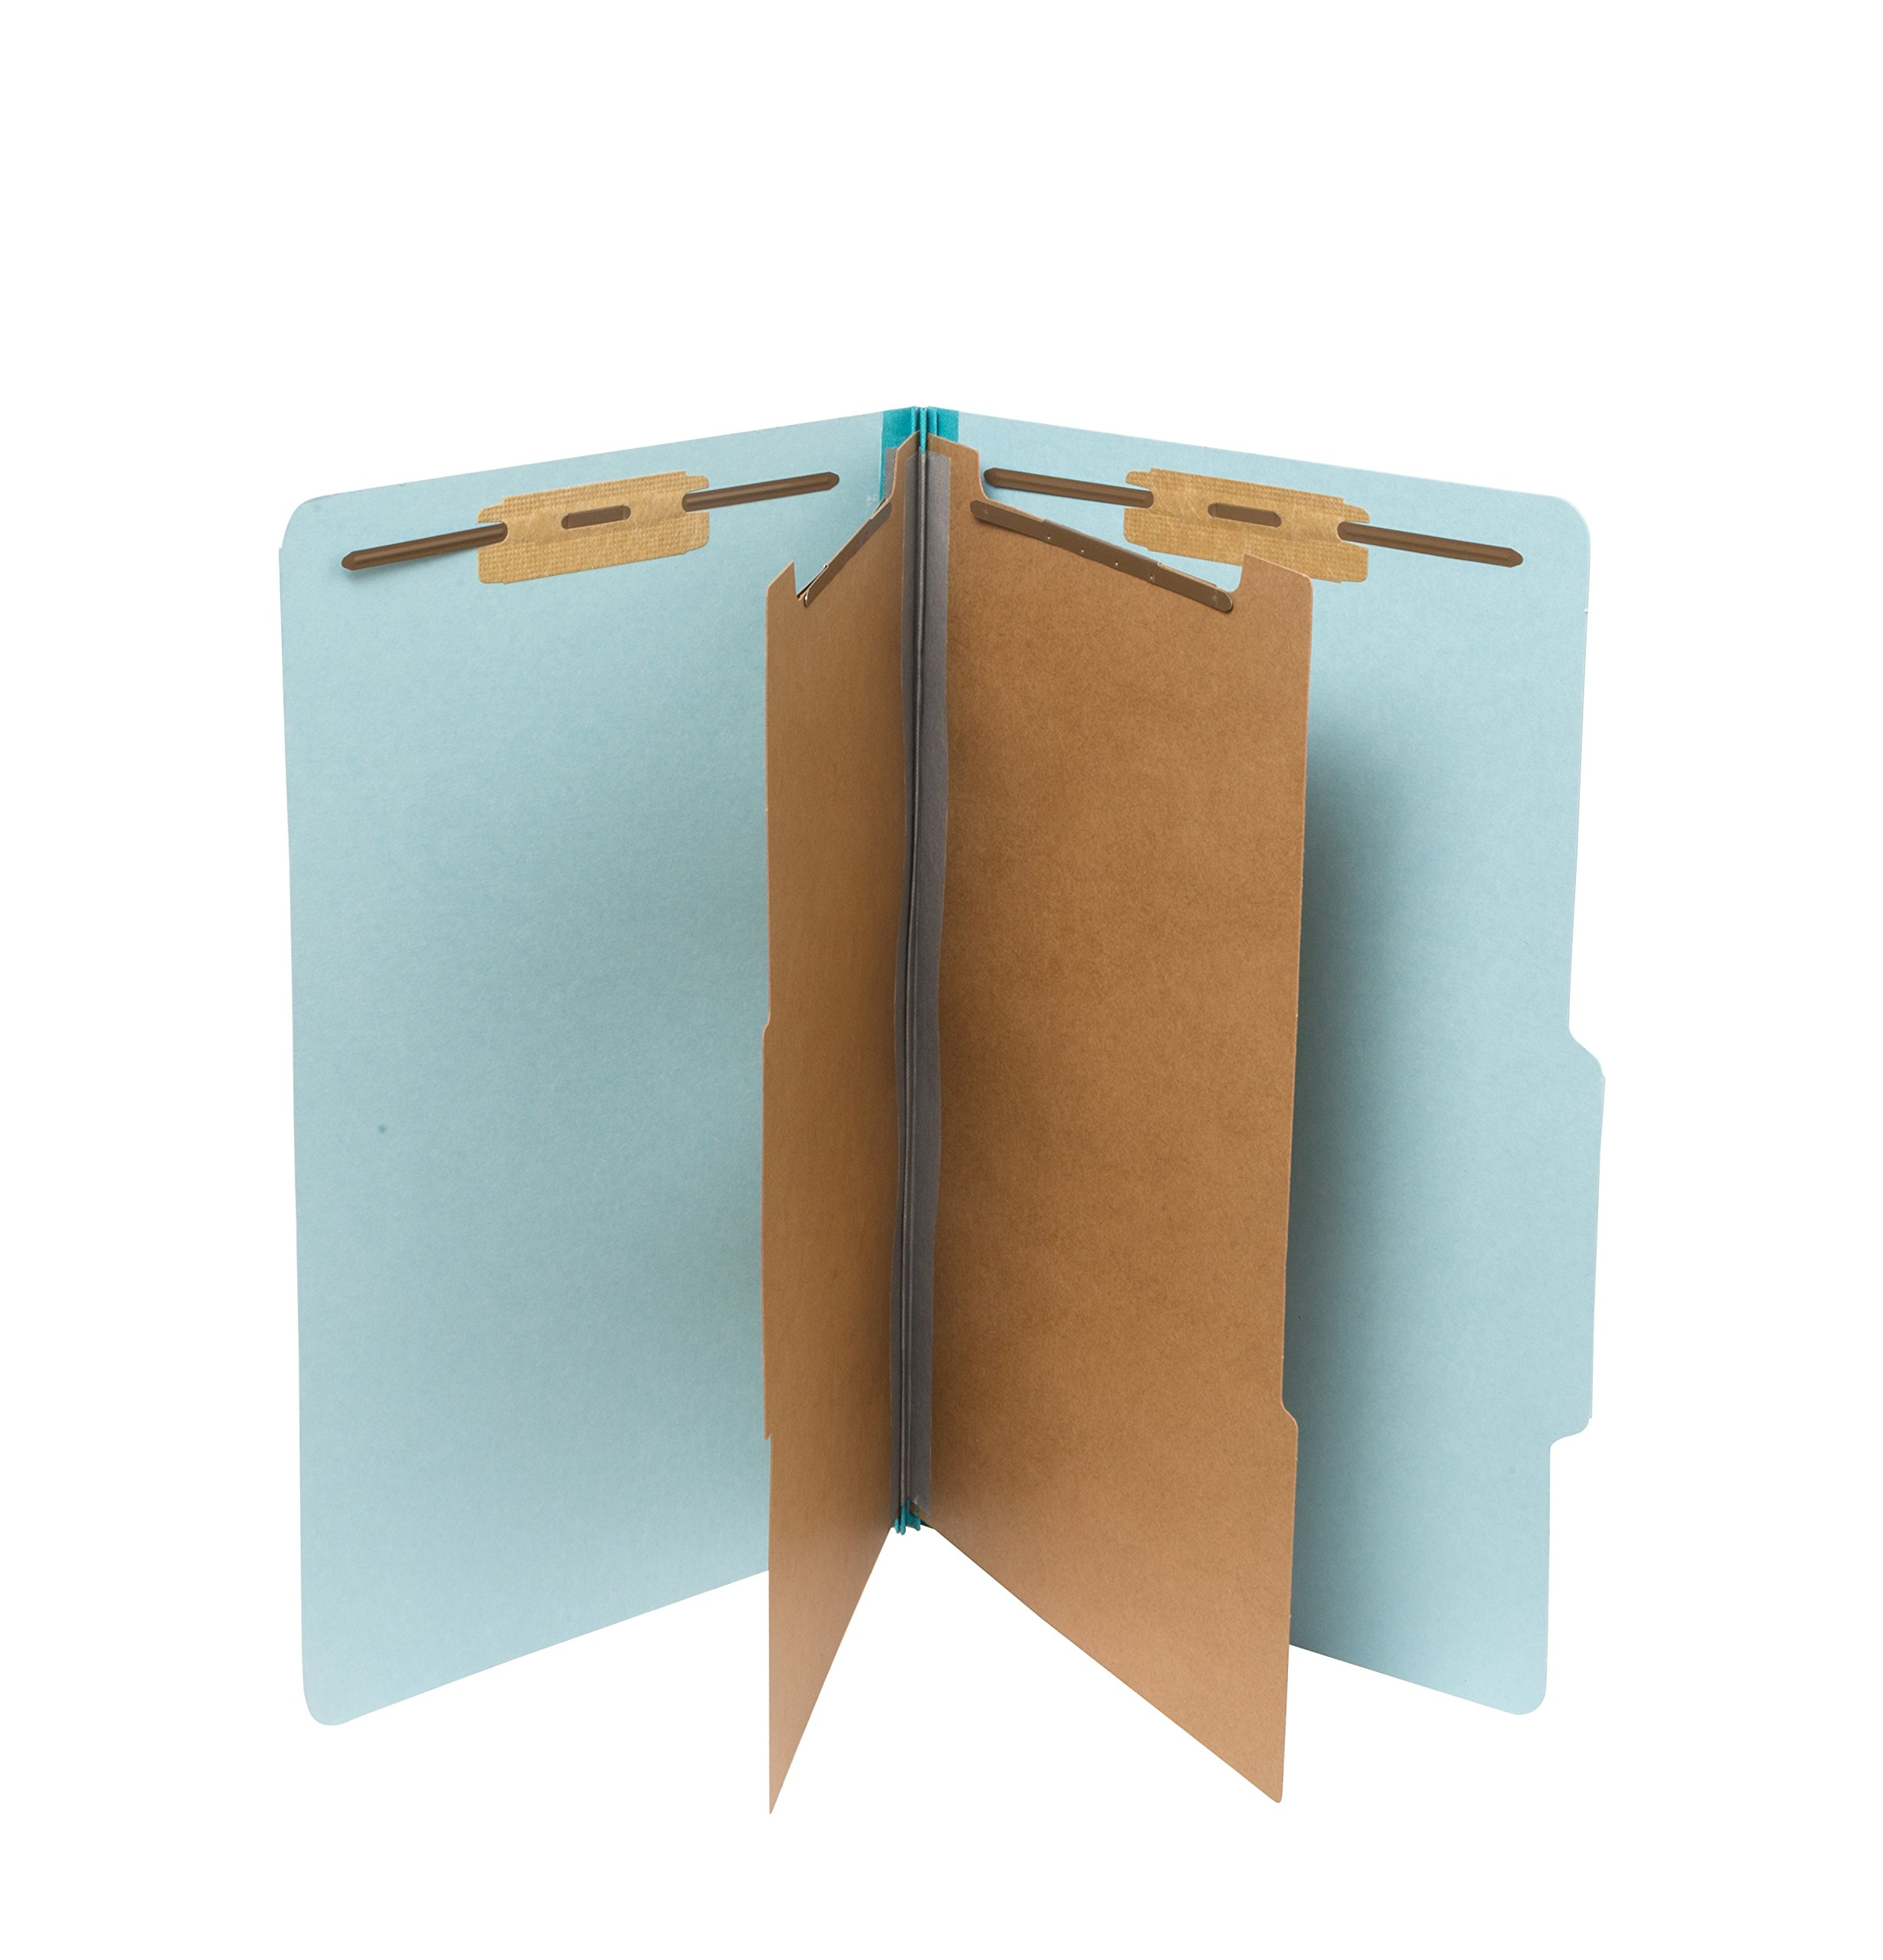 10 Blue Legal Size Classification Folders- 2 Divider-2'' Tyvek expansions- Durable 2 Prongs Designed to Organize Standard Law Client Files, Office Reports– Legal Size, 8 3/4 x 14 3/4, 10 Folders